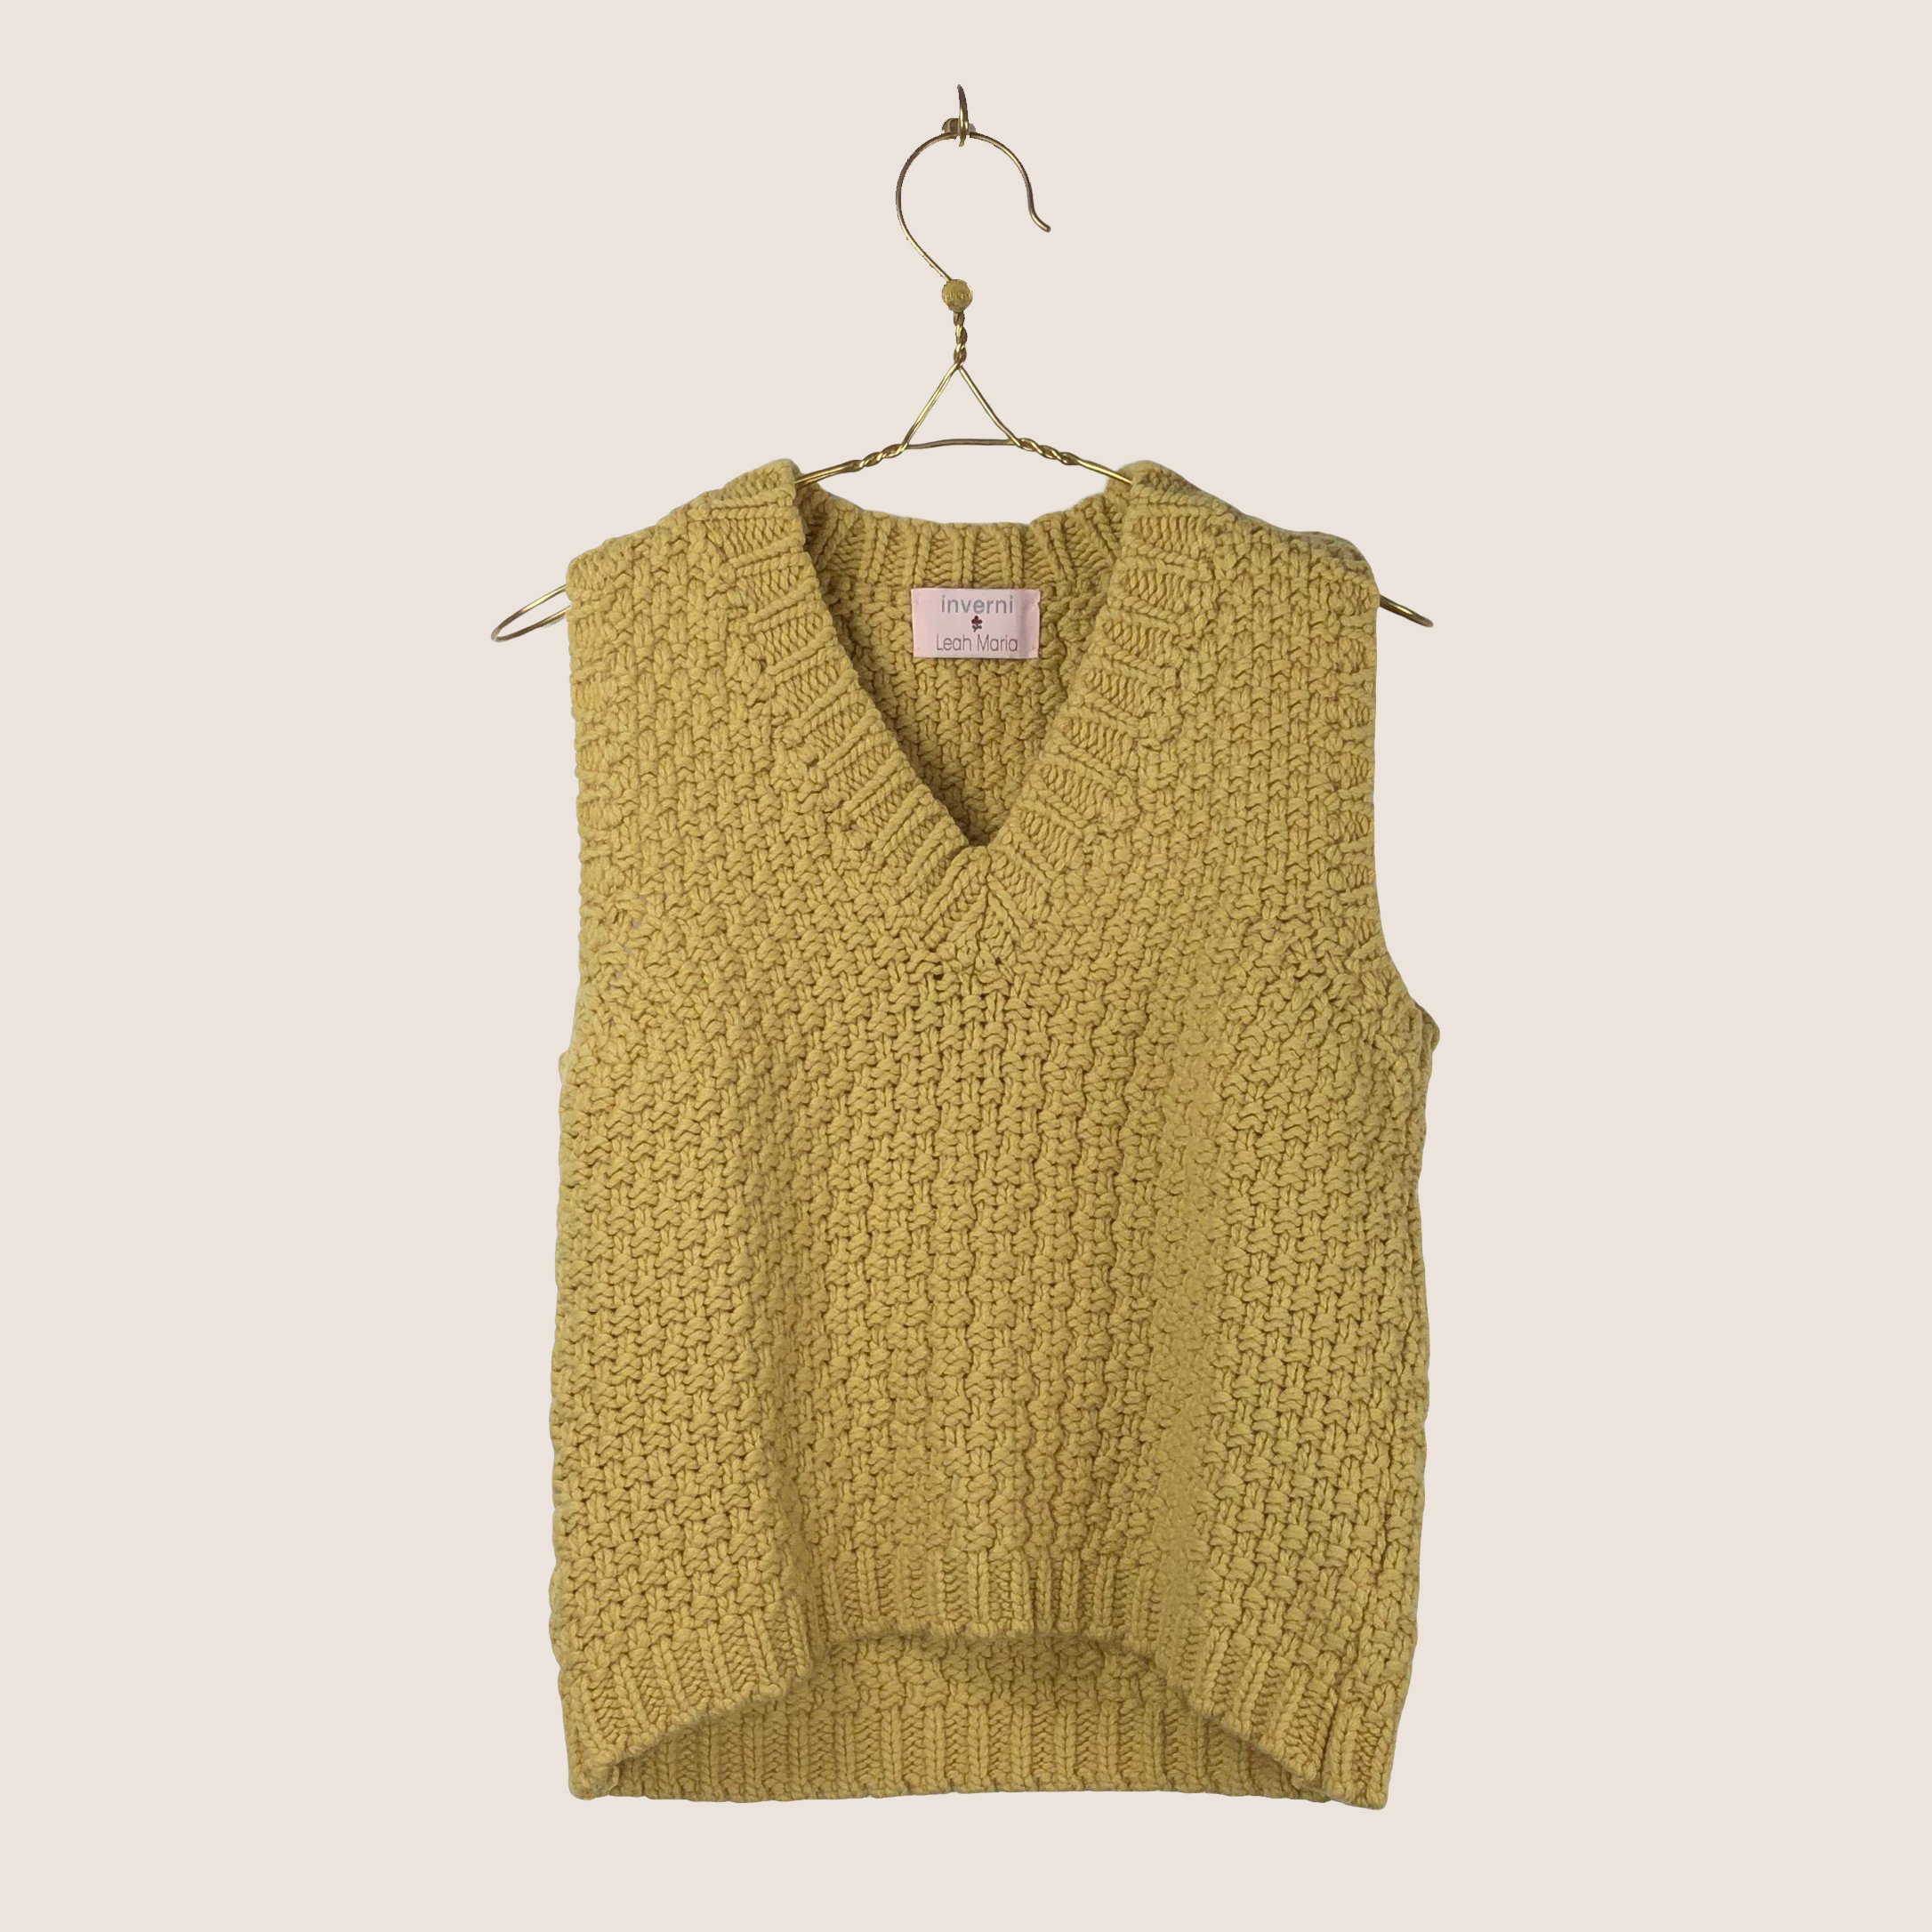 Inverni x LM Knitted Vest